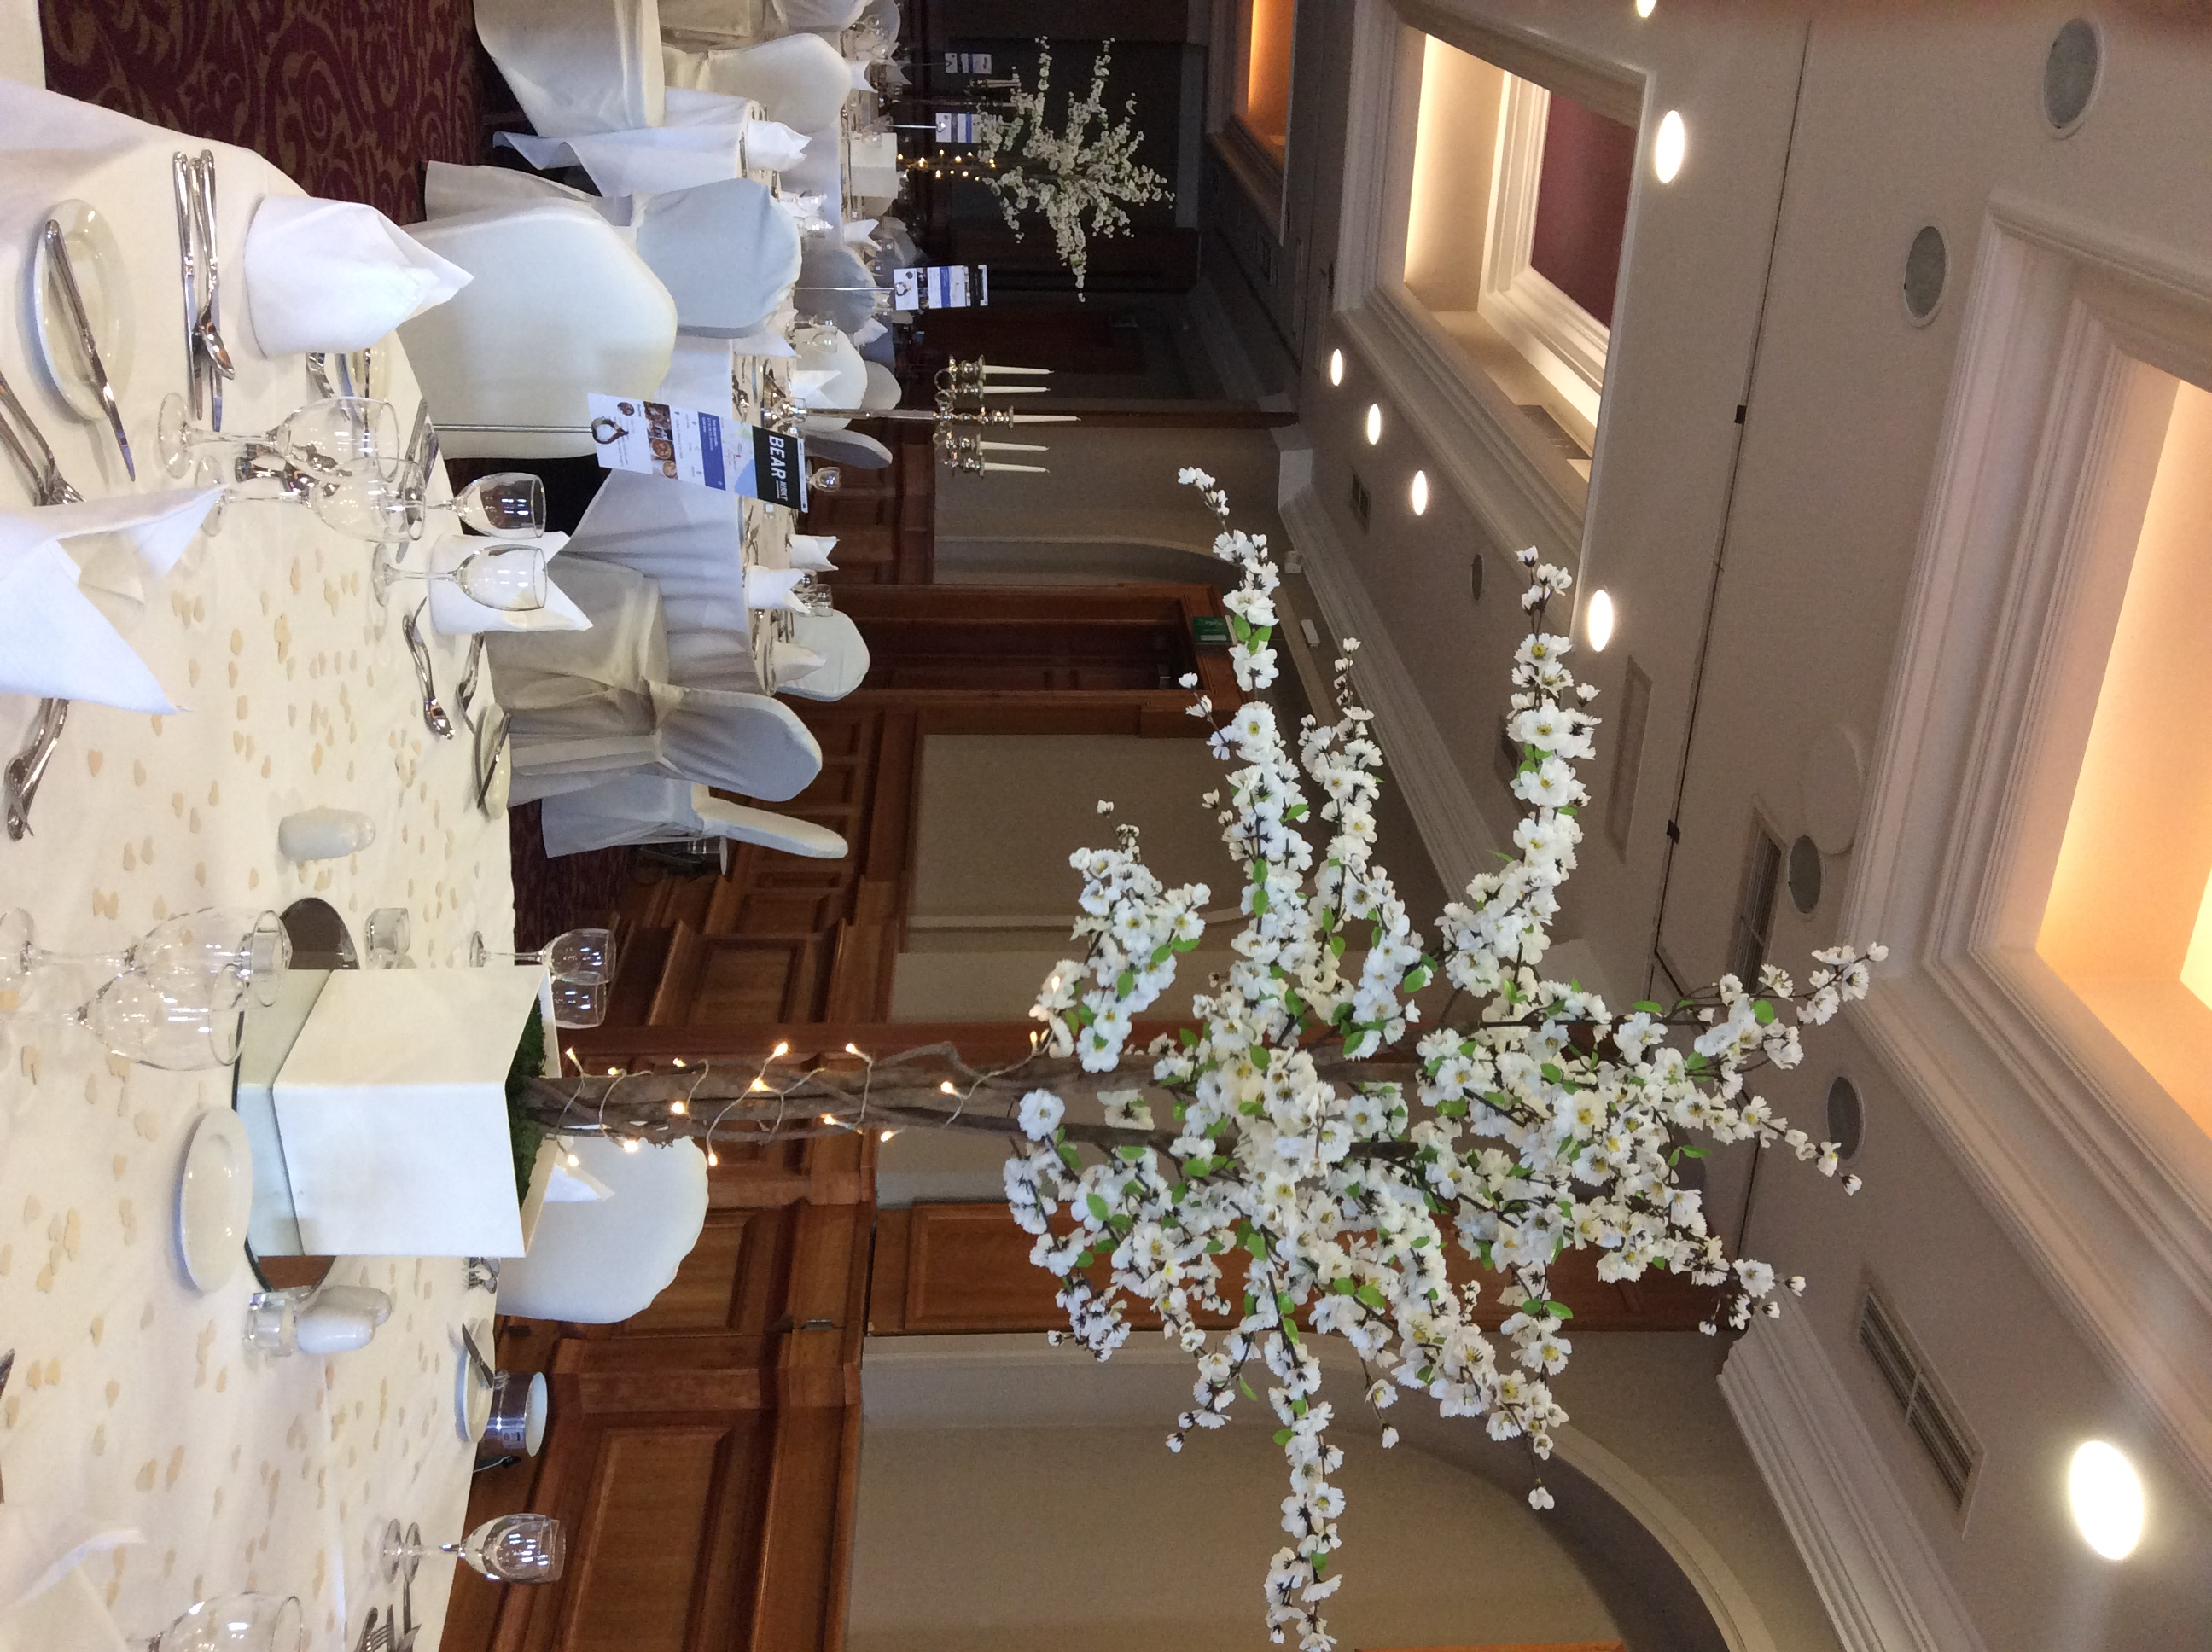 White Cherry Blossom Reception Table Centre Piece 11